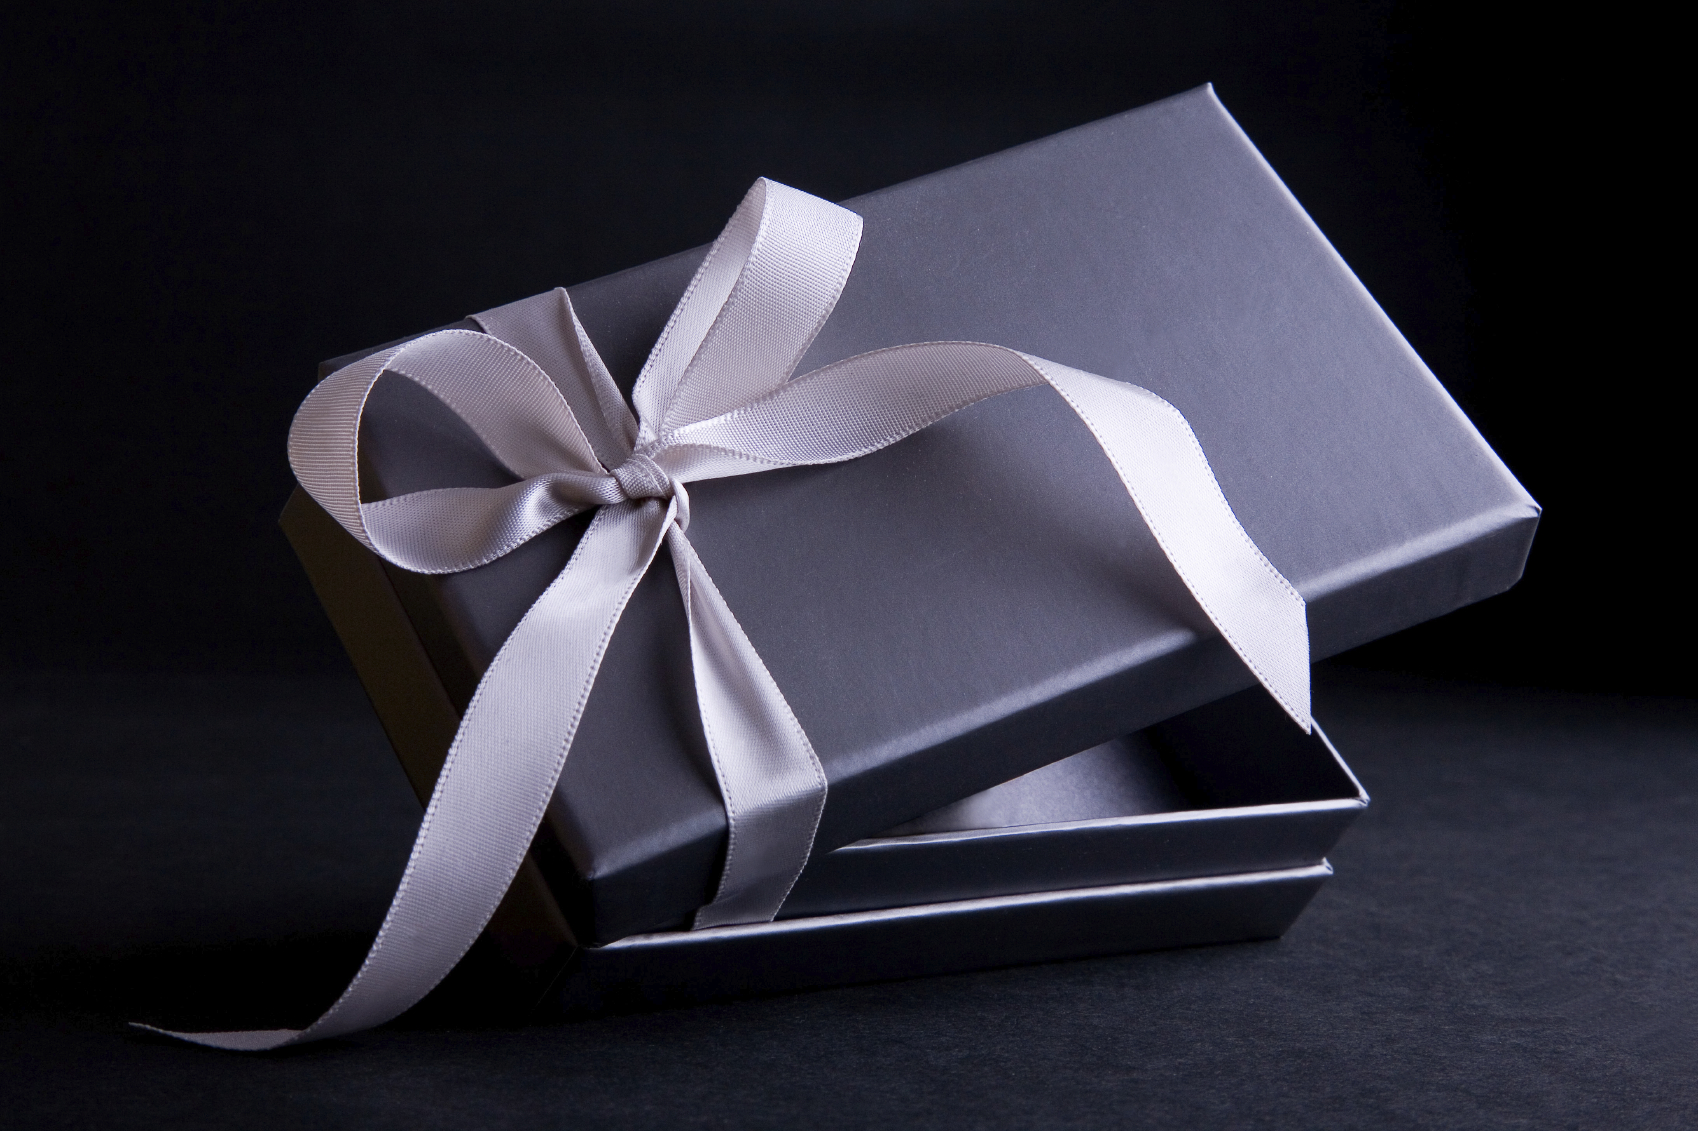 Ultimate Luxury Gift Ideas for Valentines Day : Ultimate Luxury Gift Ideas for Valentines Day from www.luxxu.net size 1698 x 1131 jpeg 1610kB